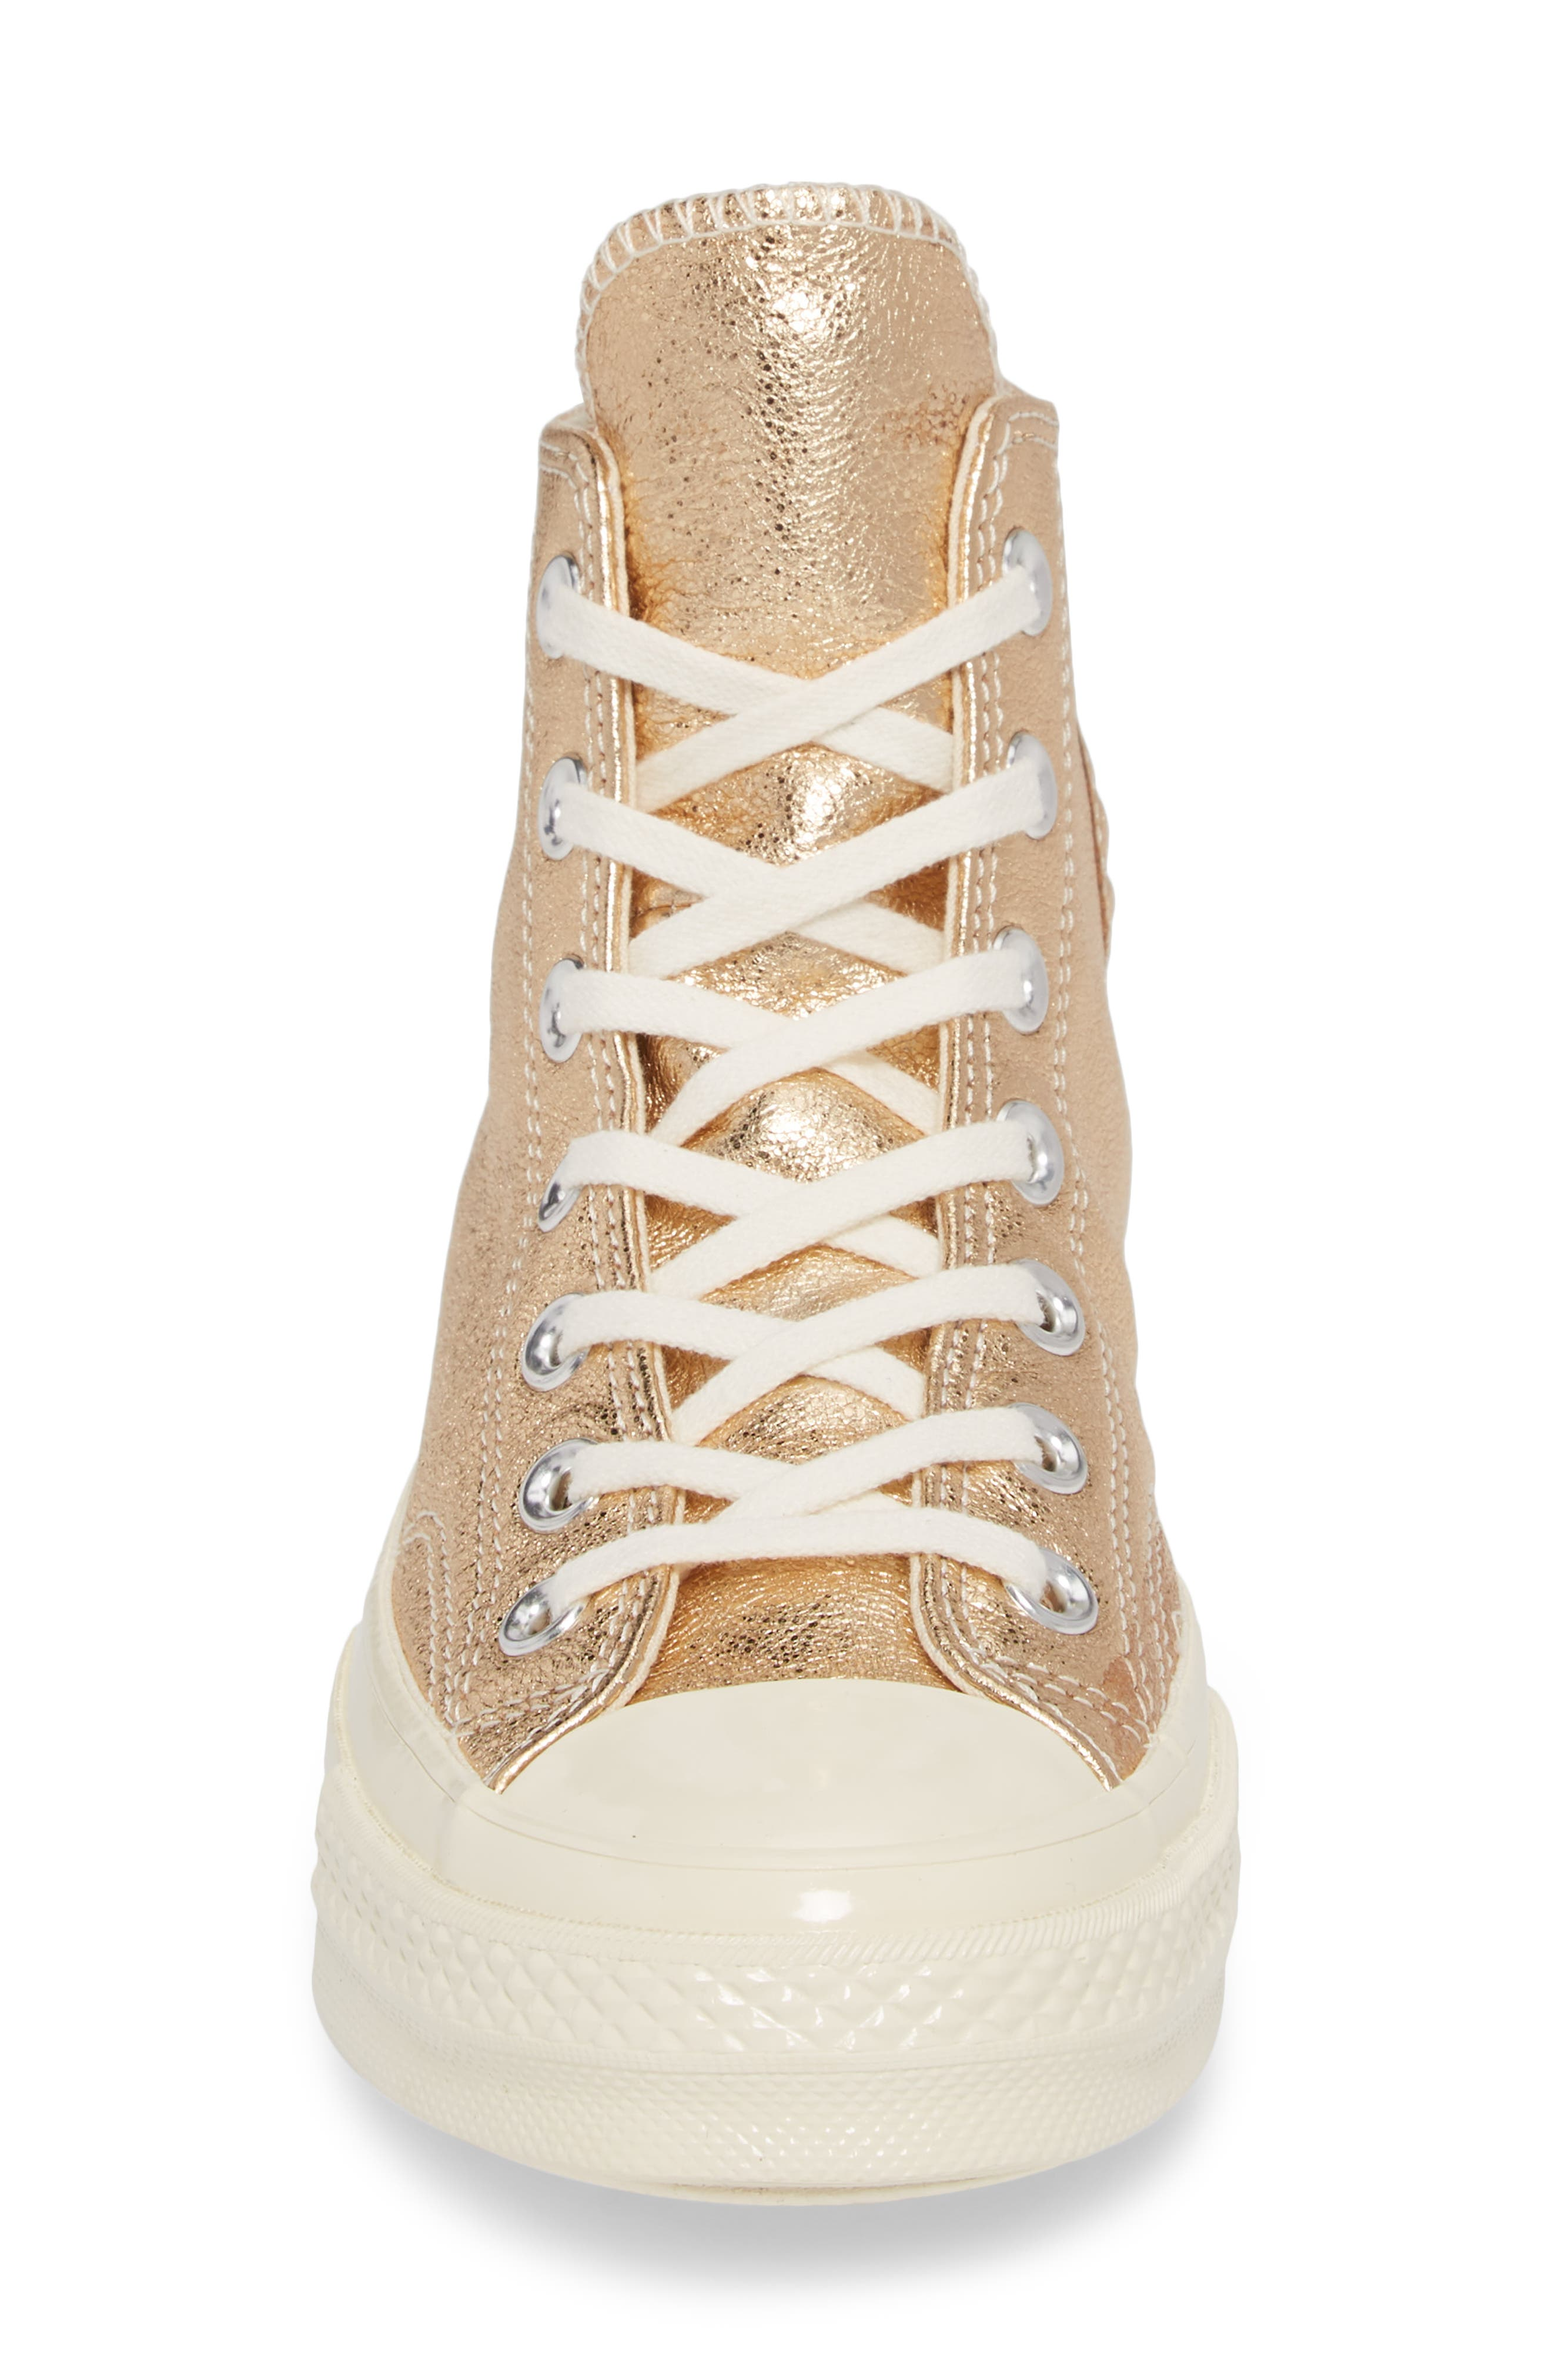 Chuck Taylor<sup>®</sup> All Star<sup>®</sup> Heavy Metal 70 High Top Sneaker,                             Alternate thumbnail 12, color,